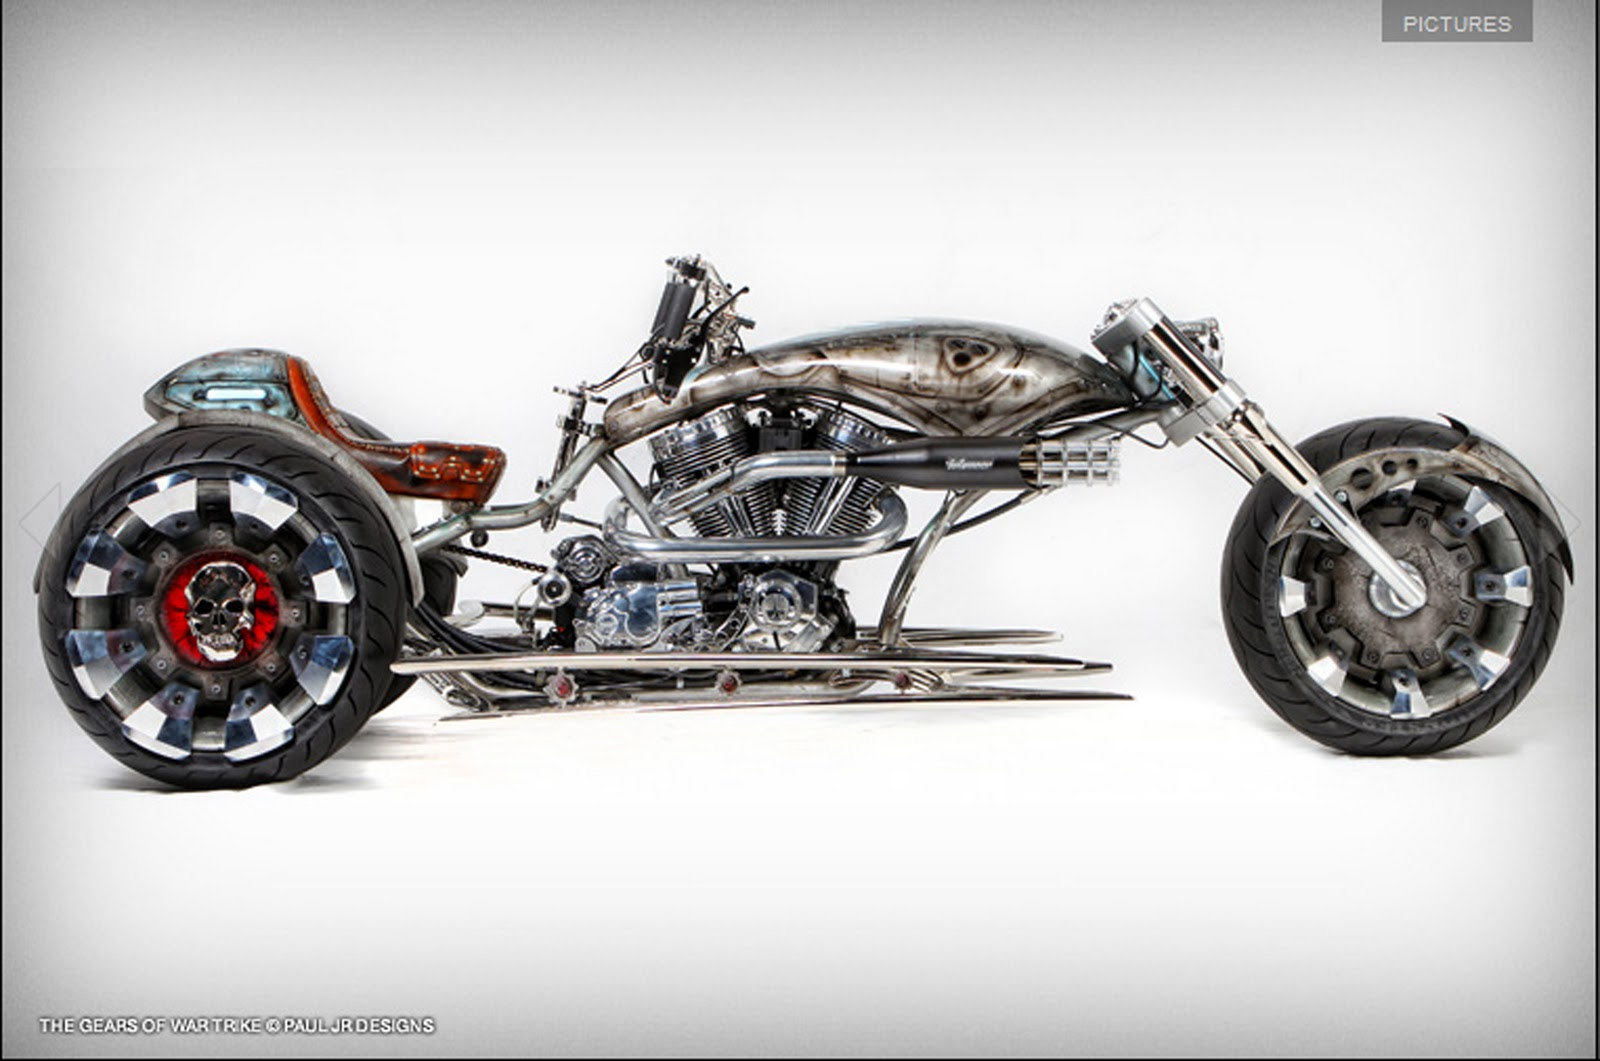 http://1.bp.blogspot.com/-Vugc0Jgab60/TuhwgyekT-I/AAAAAAAACpE/kWbkbbo45wc/s1600/Gears+of+war+trike+bike+concept+hoverbike+motorcycle+teutul+paul+jr+junior+designs+2.jpg